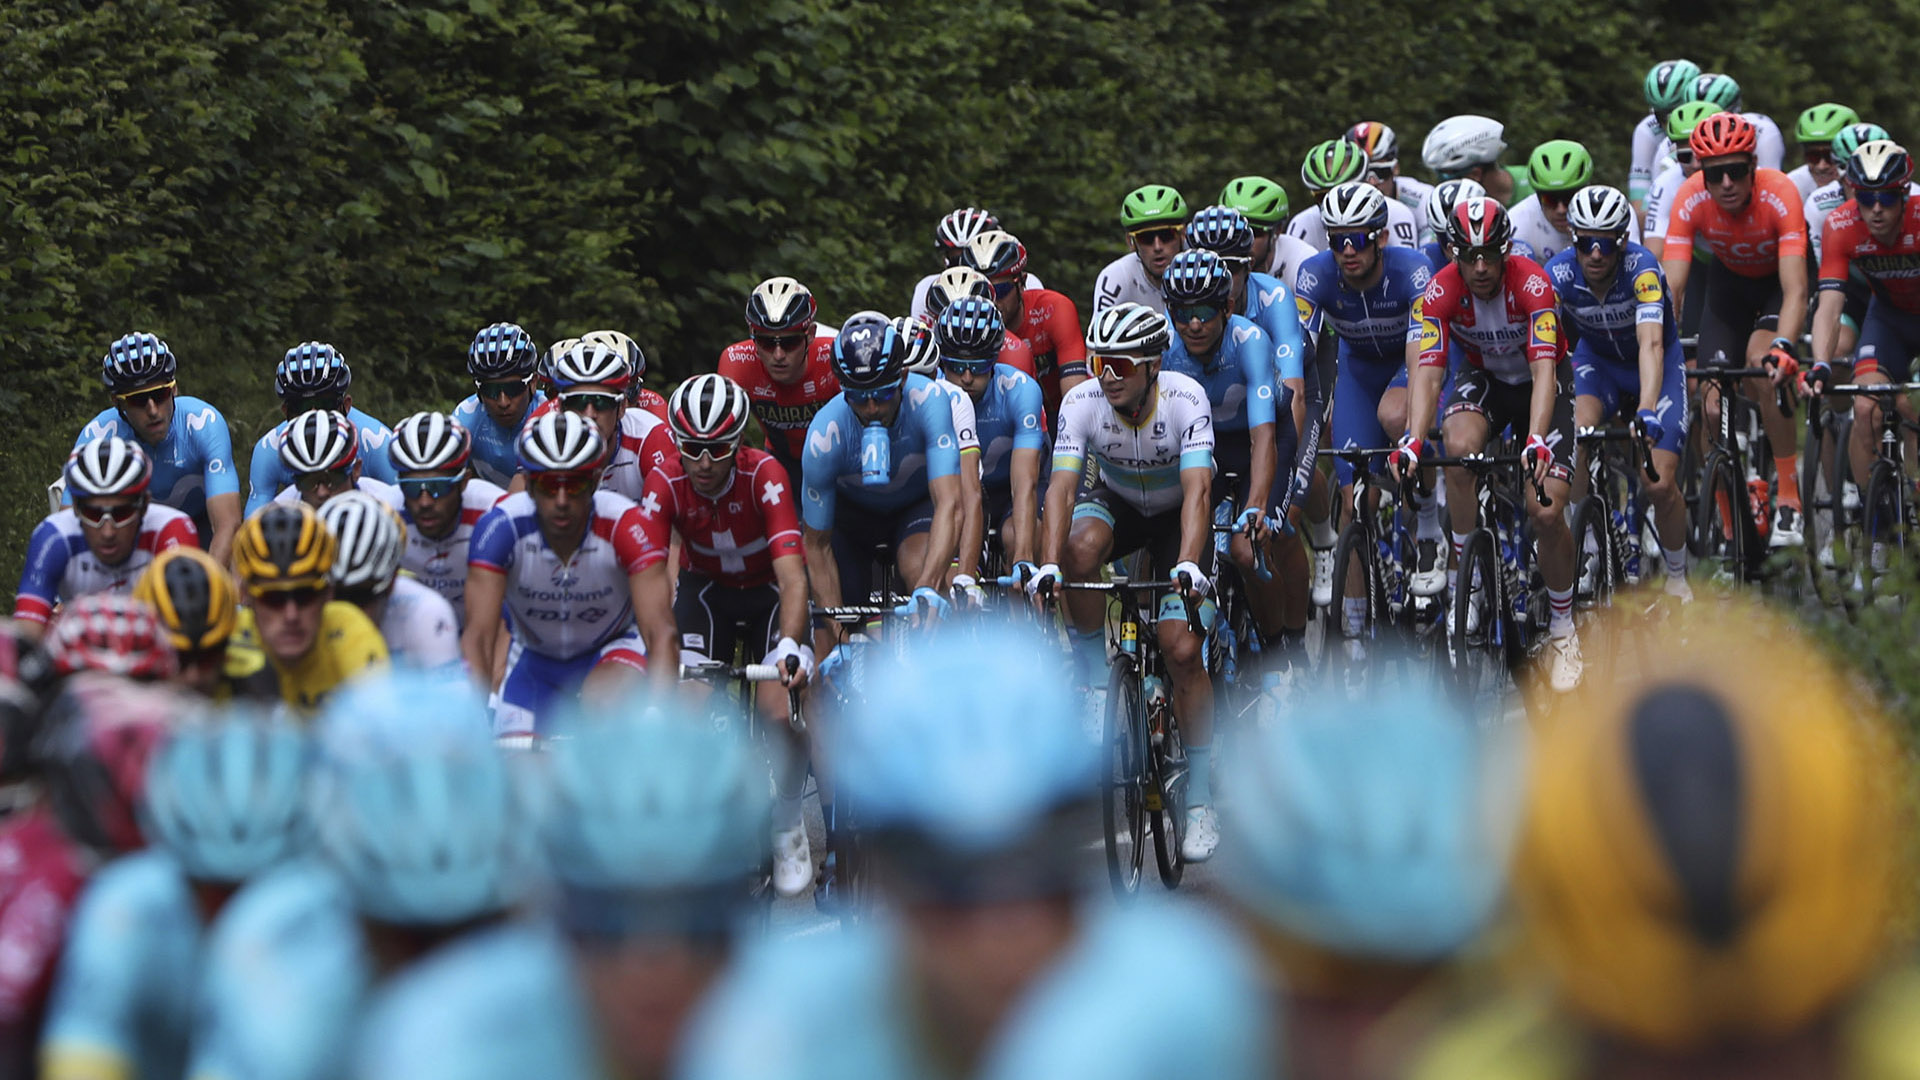 The pack rides during the third stage of the Tour de France cycling race over 215 kilometers (133,6 miles) with start in Binche and finish in Epernay, Monday, July 8, 2019. (AP Photo/Thibault Camus)